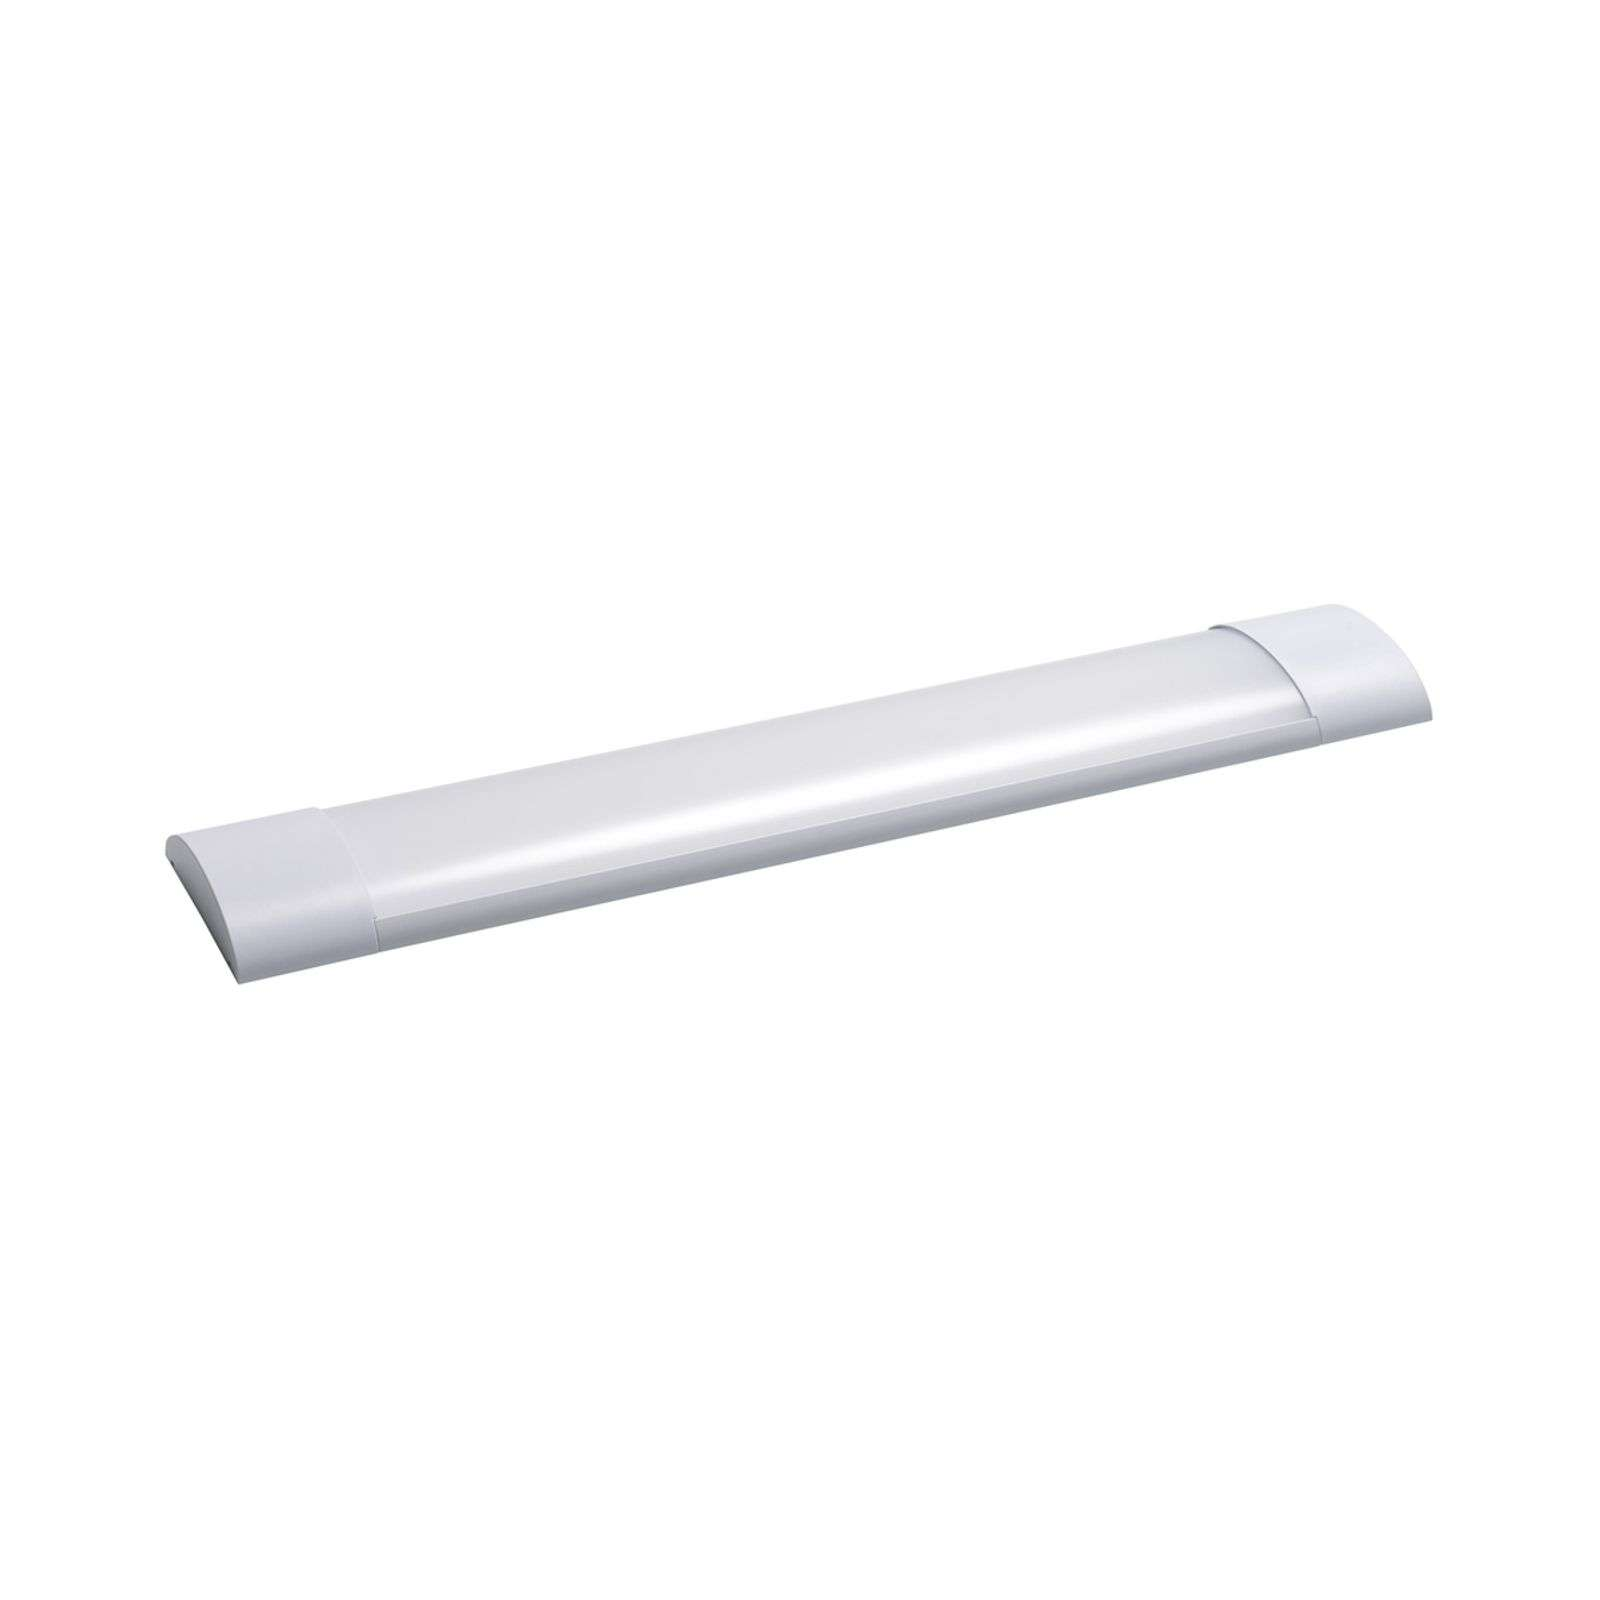 Lampada LED da soffitto Office Dim Flat 61,3 cm